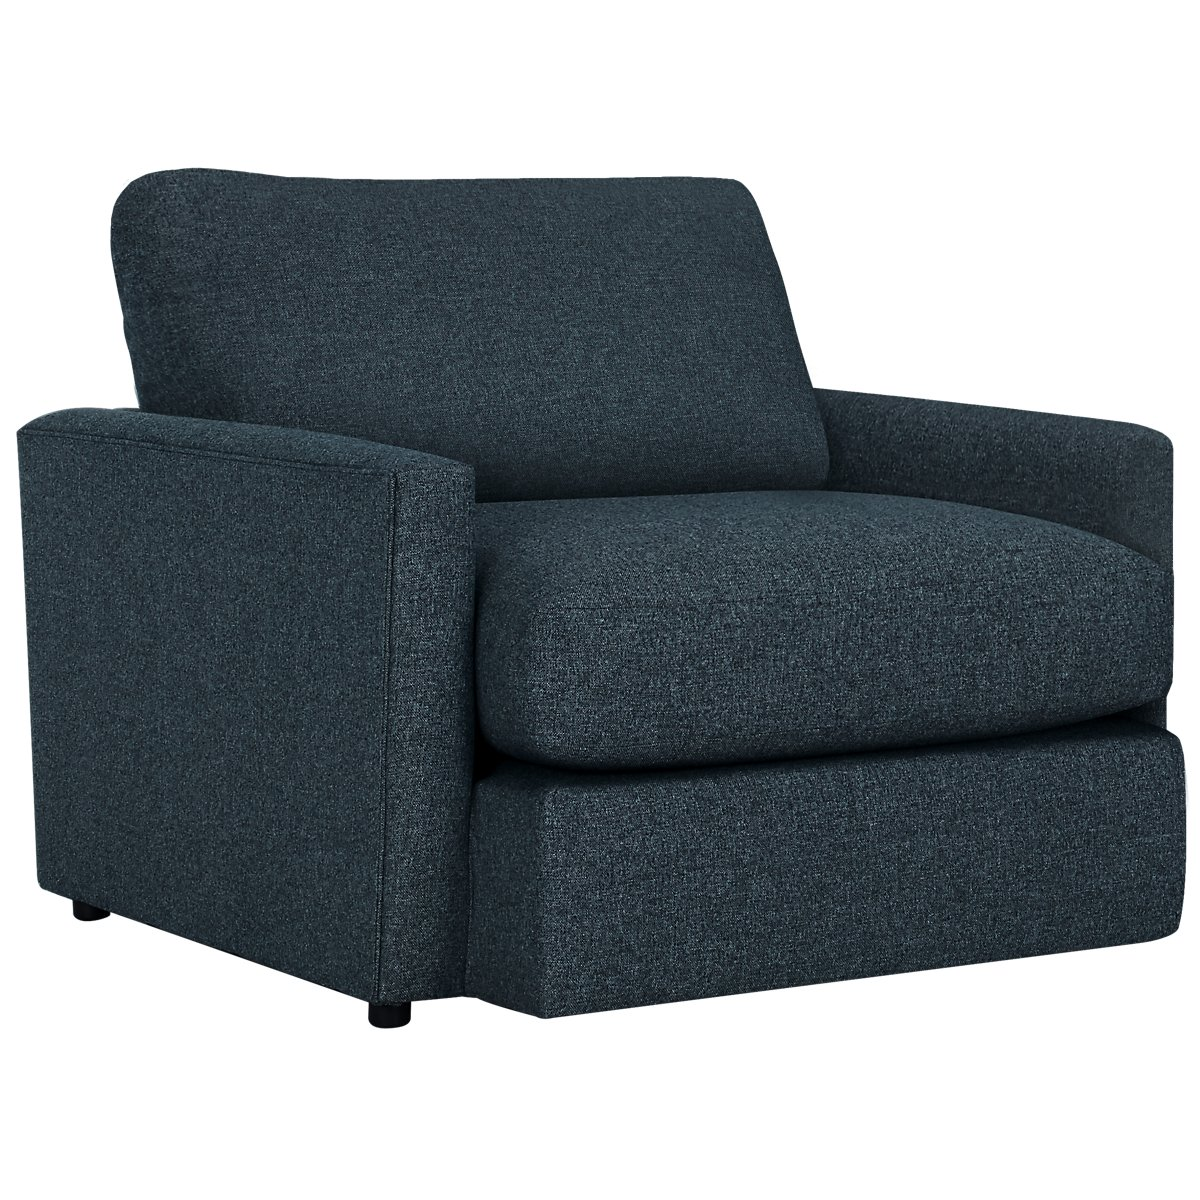 Noah Dark Blue Fabric Chair